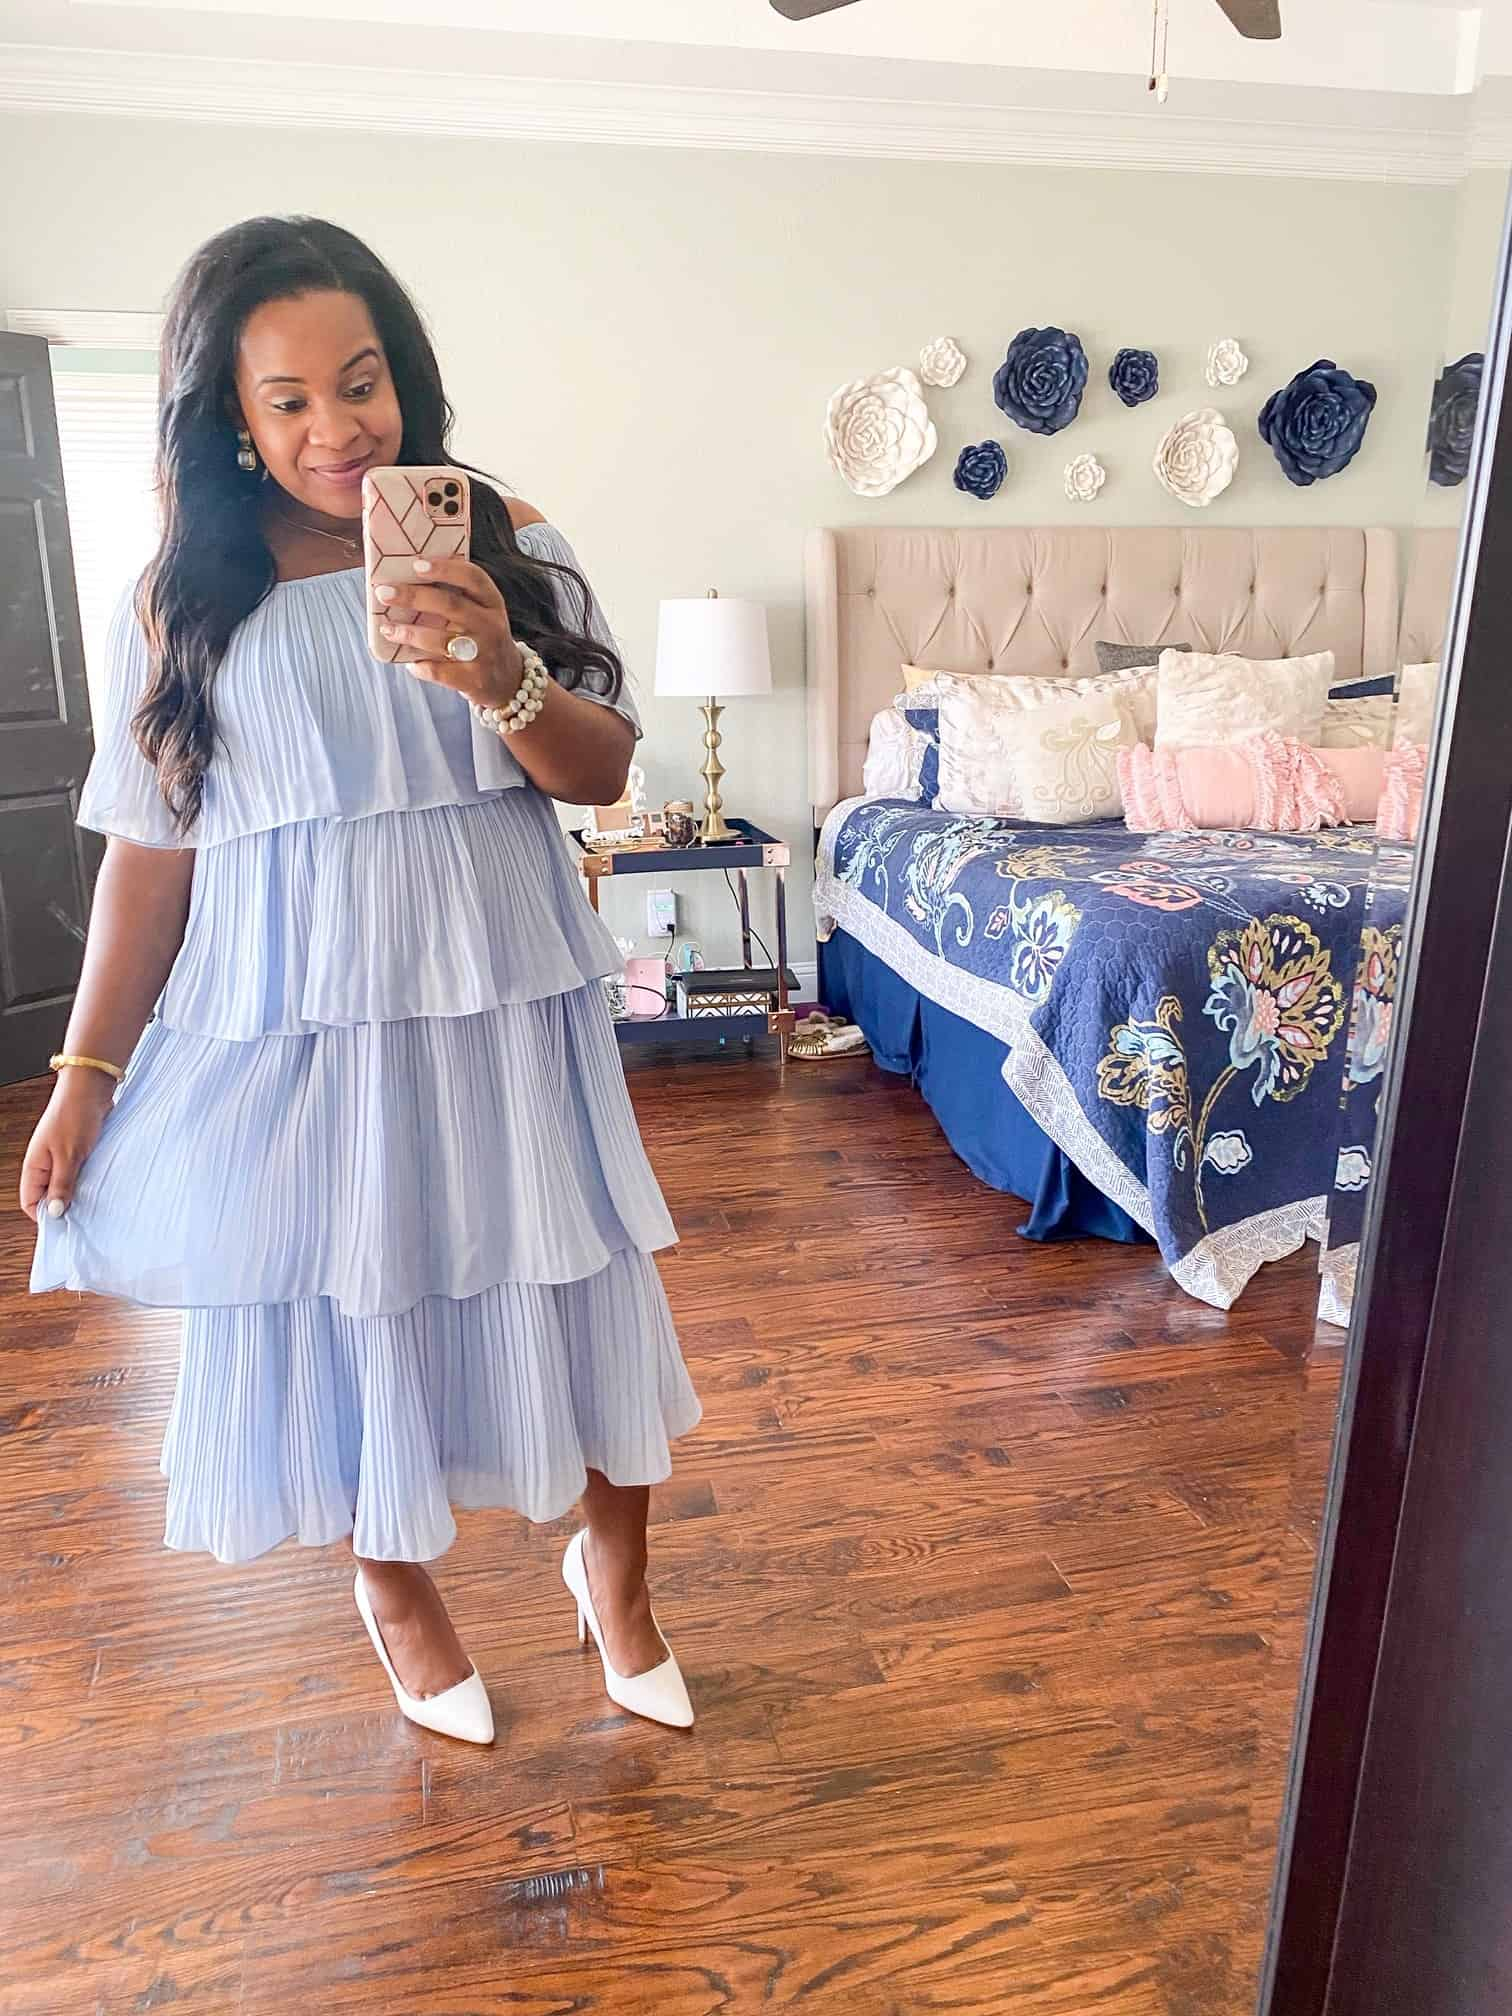 Baby Shower Dress Ideas by popular Dallas fashion blog, Glamorous Versatility: image of a woman wearing a blue tiered midi dress.